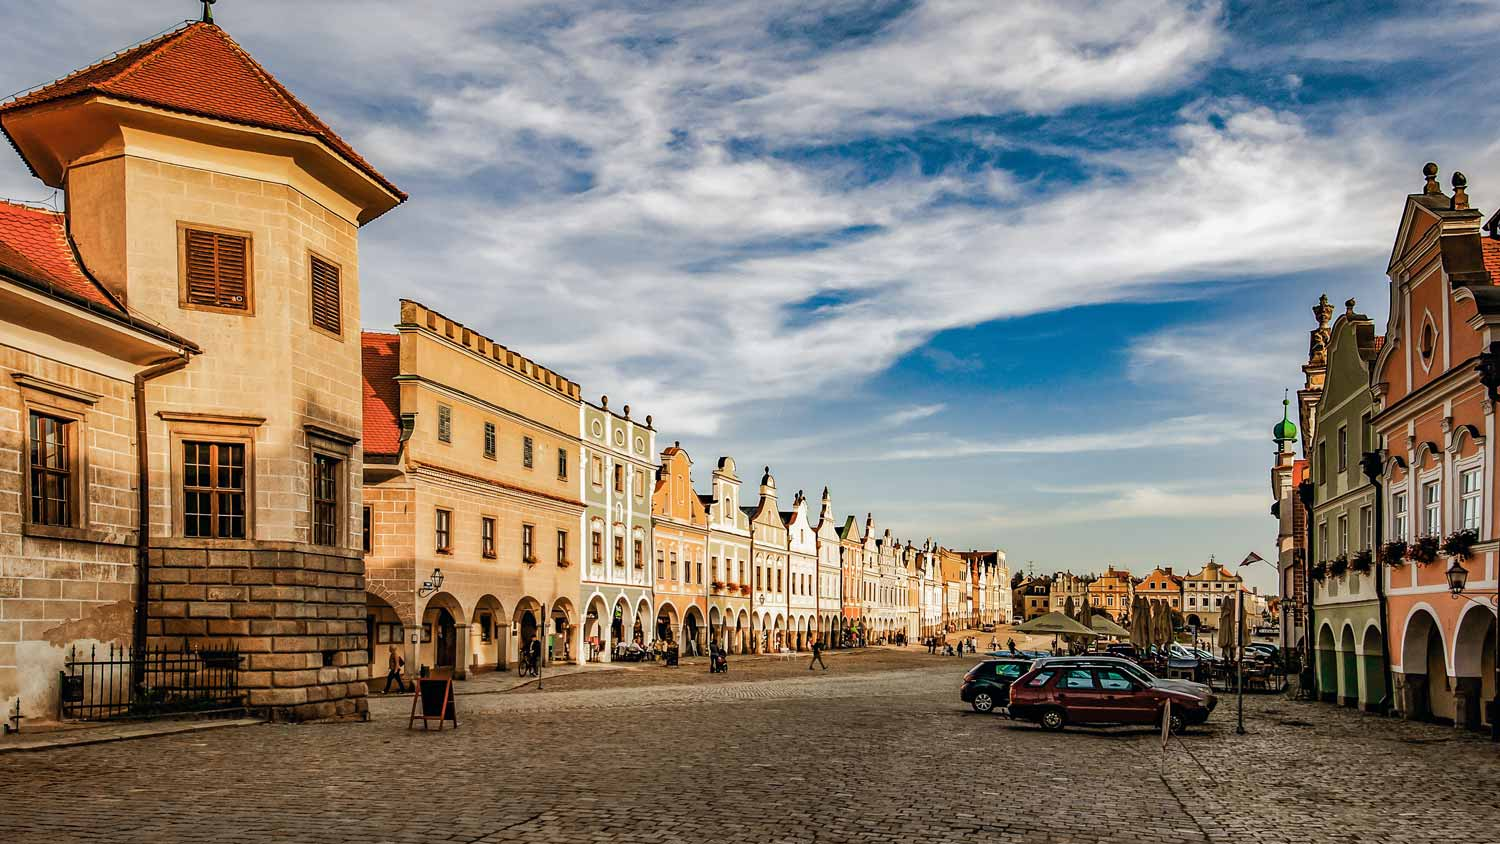 View of the square in Telc with colored houses and a fountain